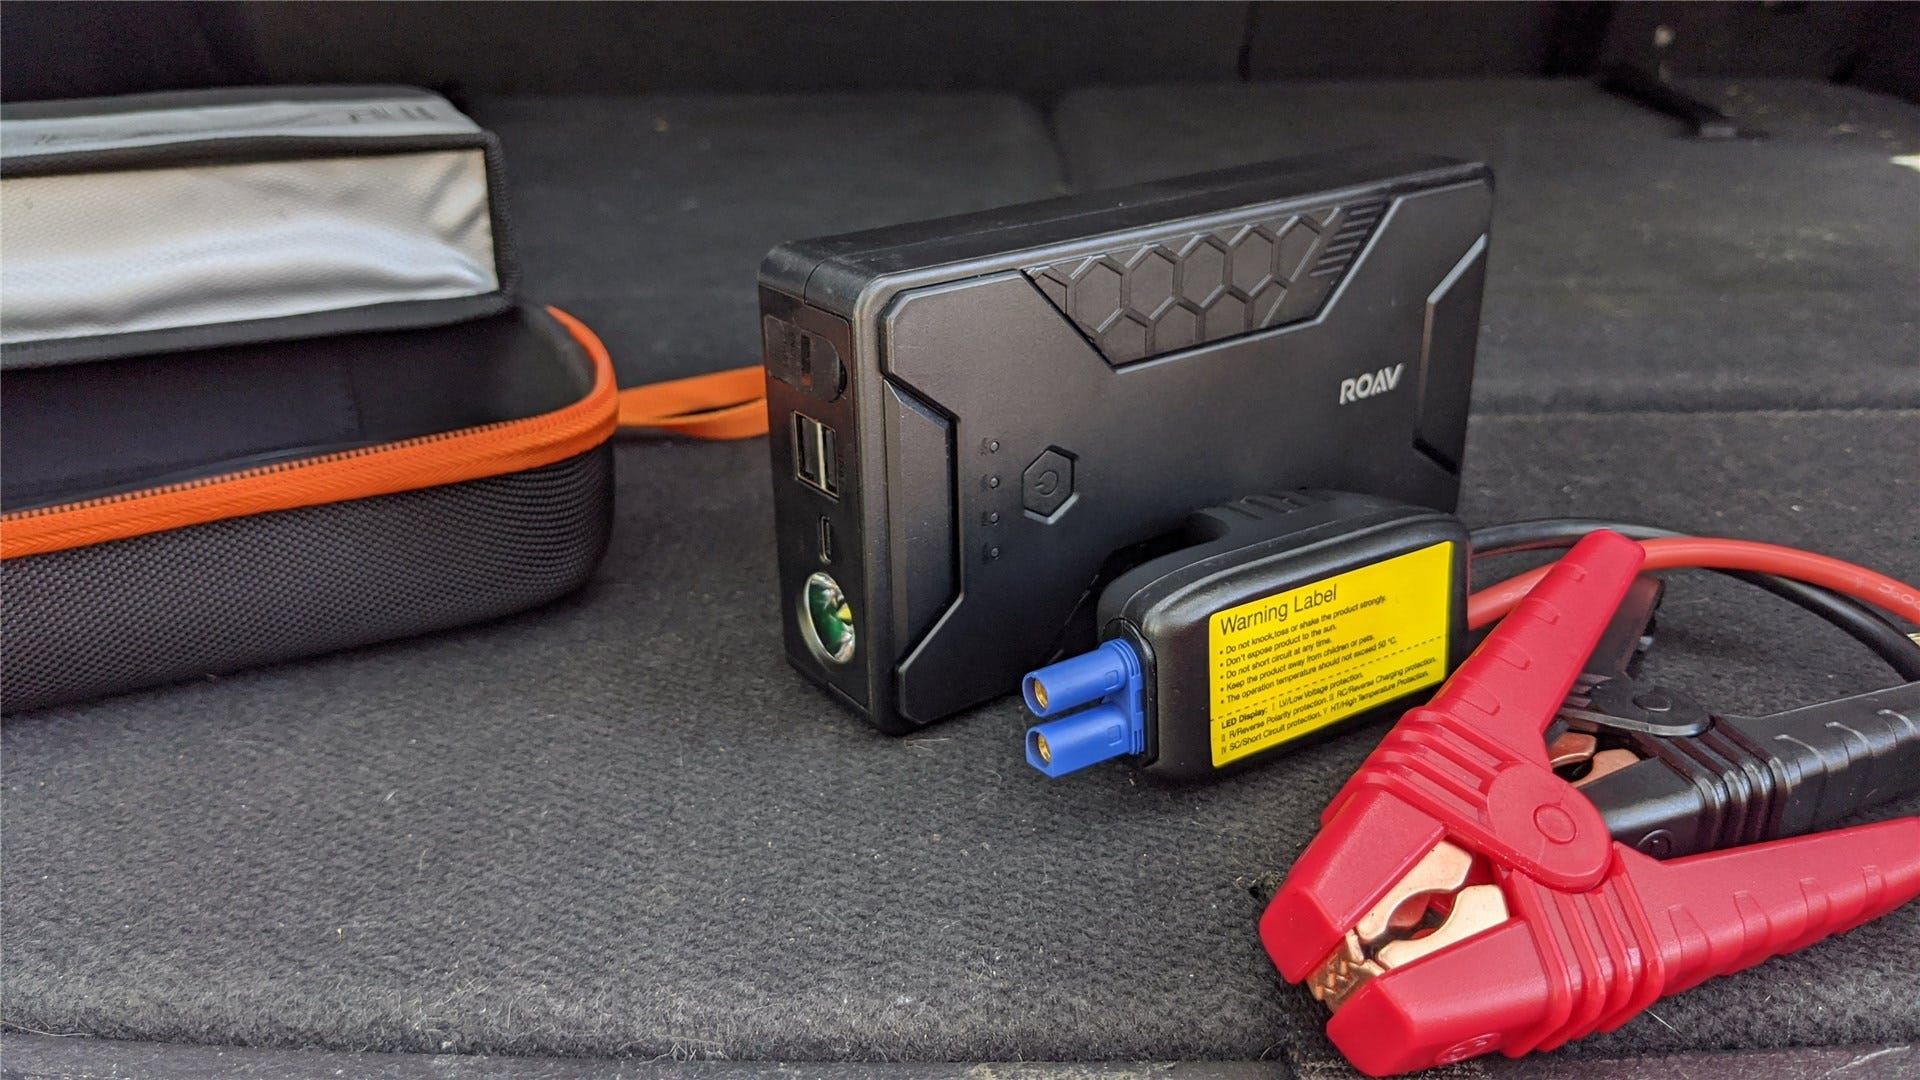 The Anker Roav portable battery with car booster cables